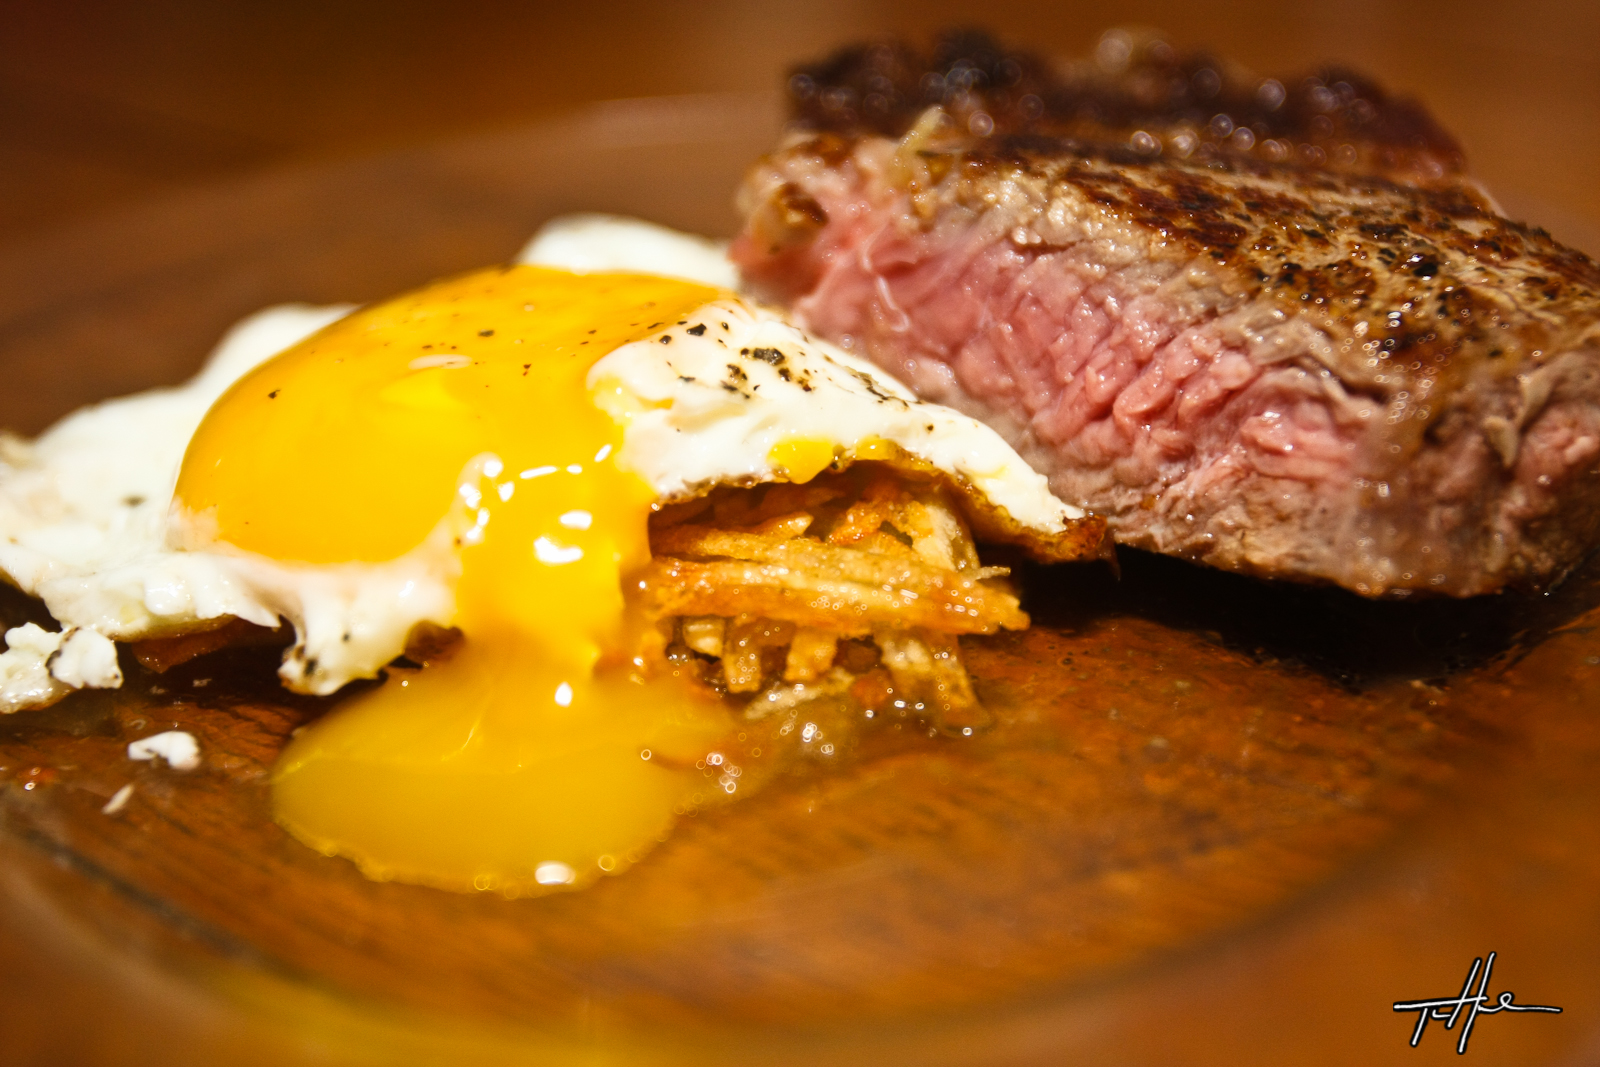 ... Steak and eggs. Rib eye steak, fresh grated hash browns and sunny side